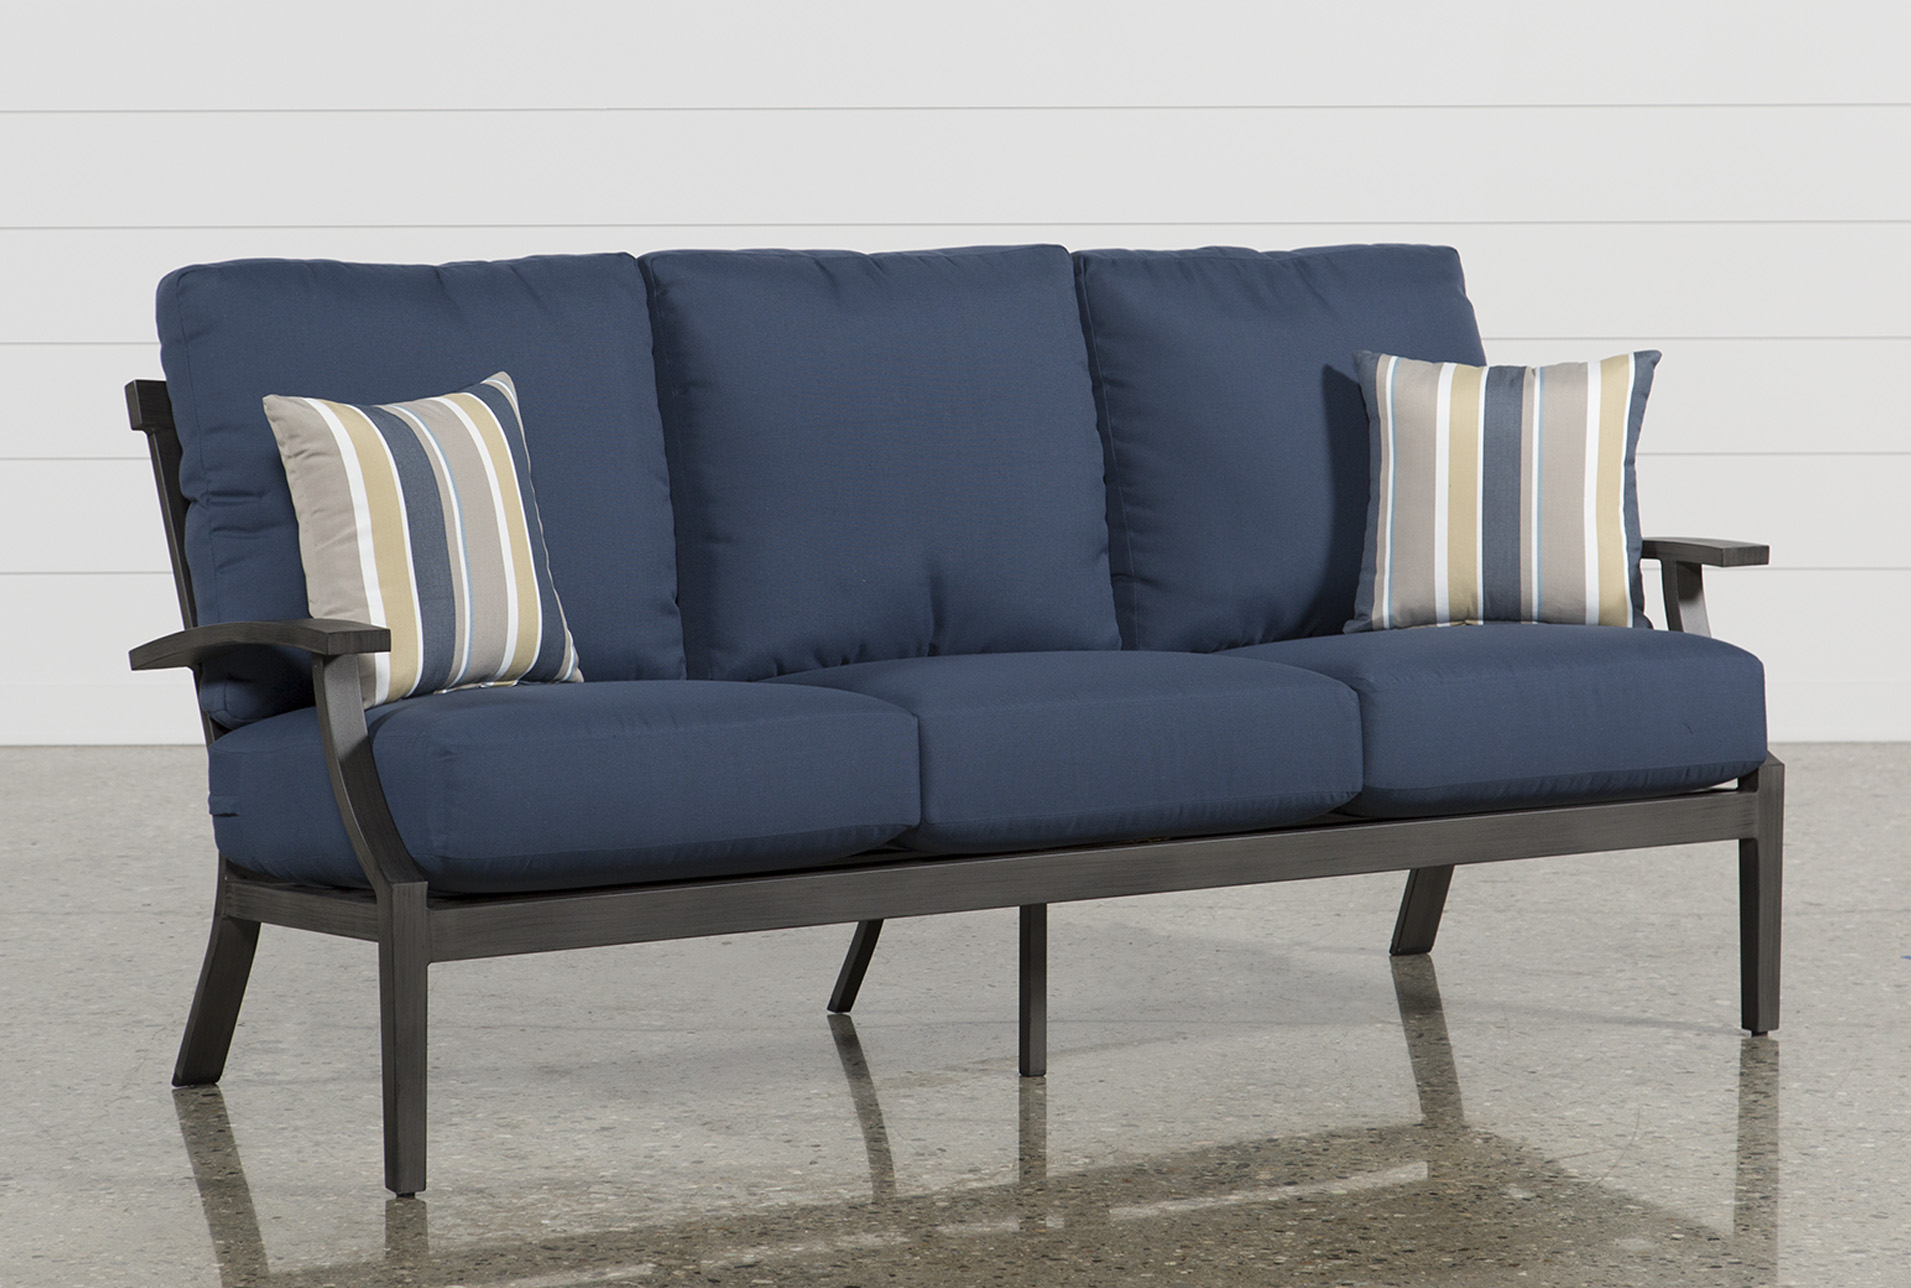 Martinique Navy Outdoor Sofa   Living Spaces on Living Spaces Outdoor Sectional id=27856